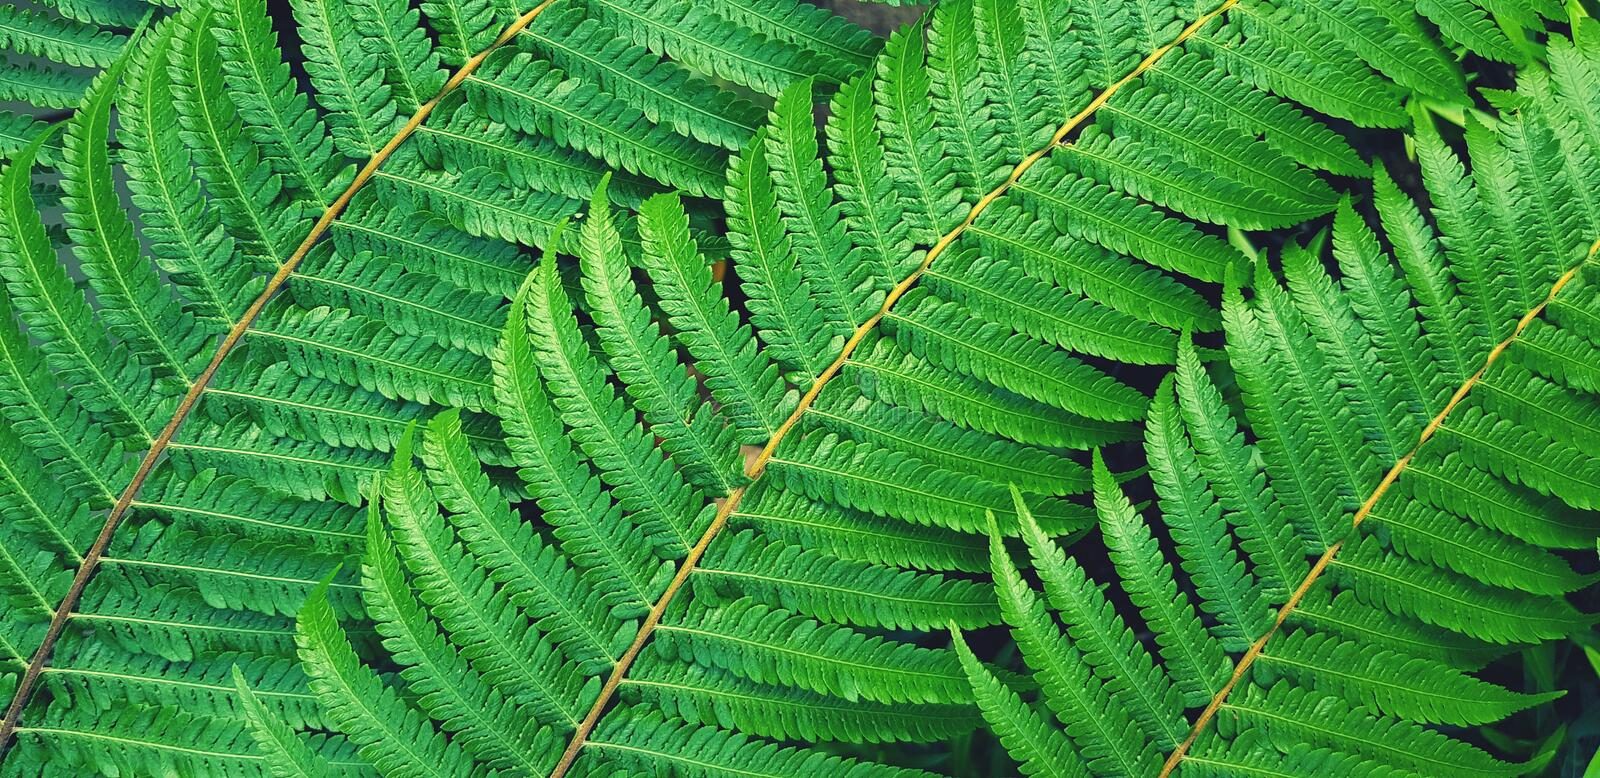 Beautiful pattern of green fern leaves with blue filter style for background royalty free stock images